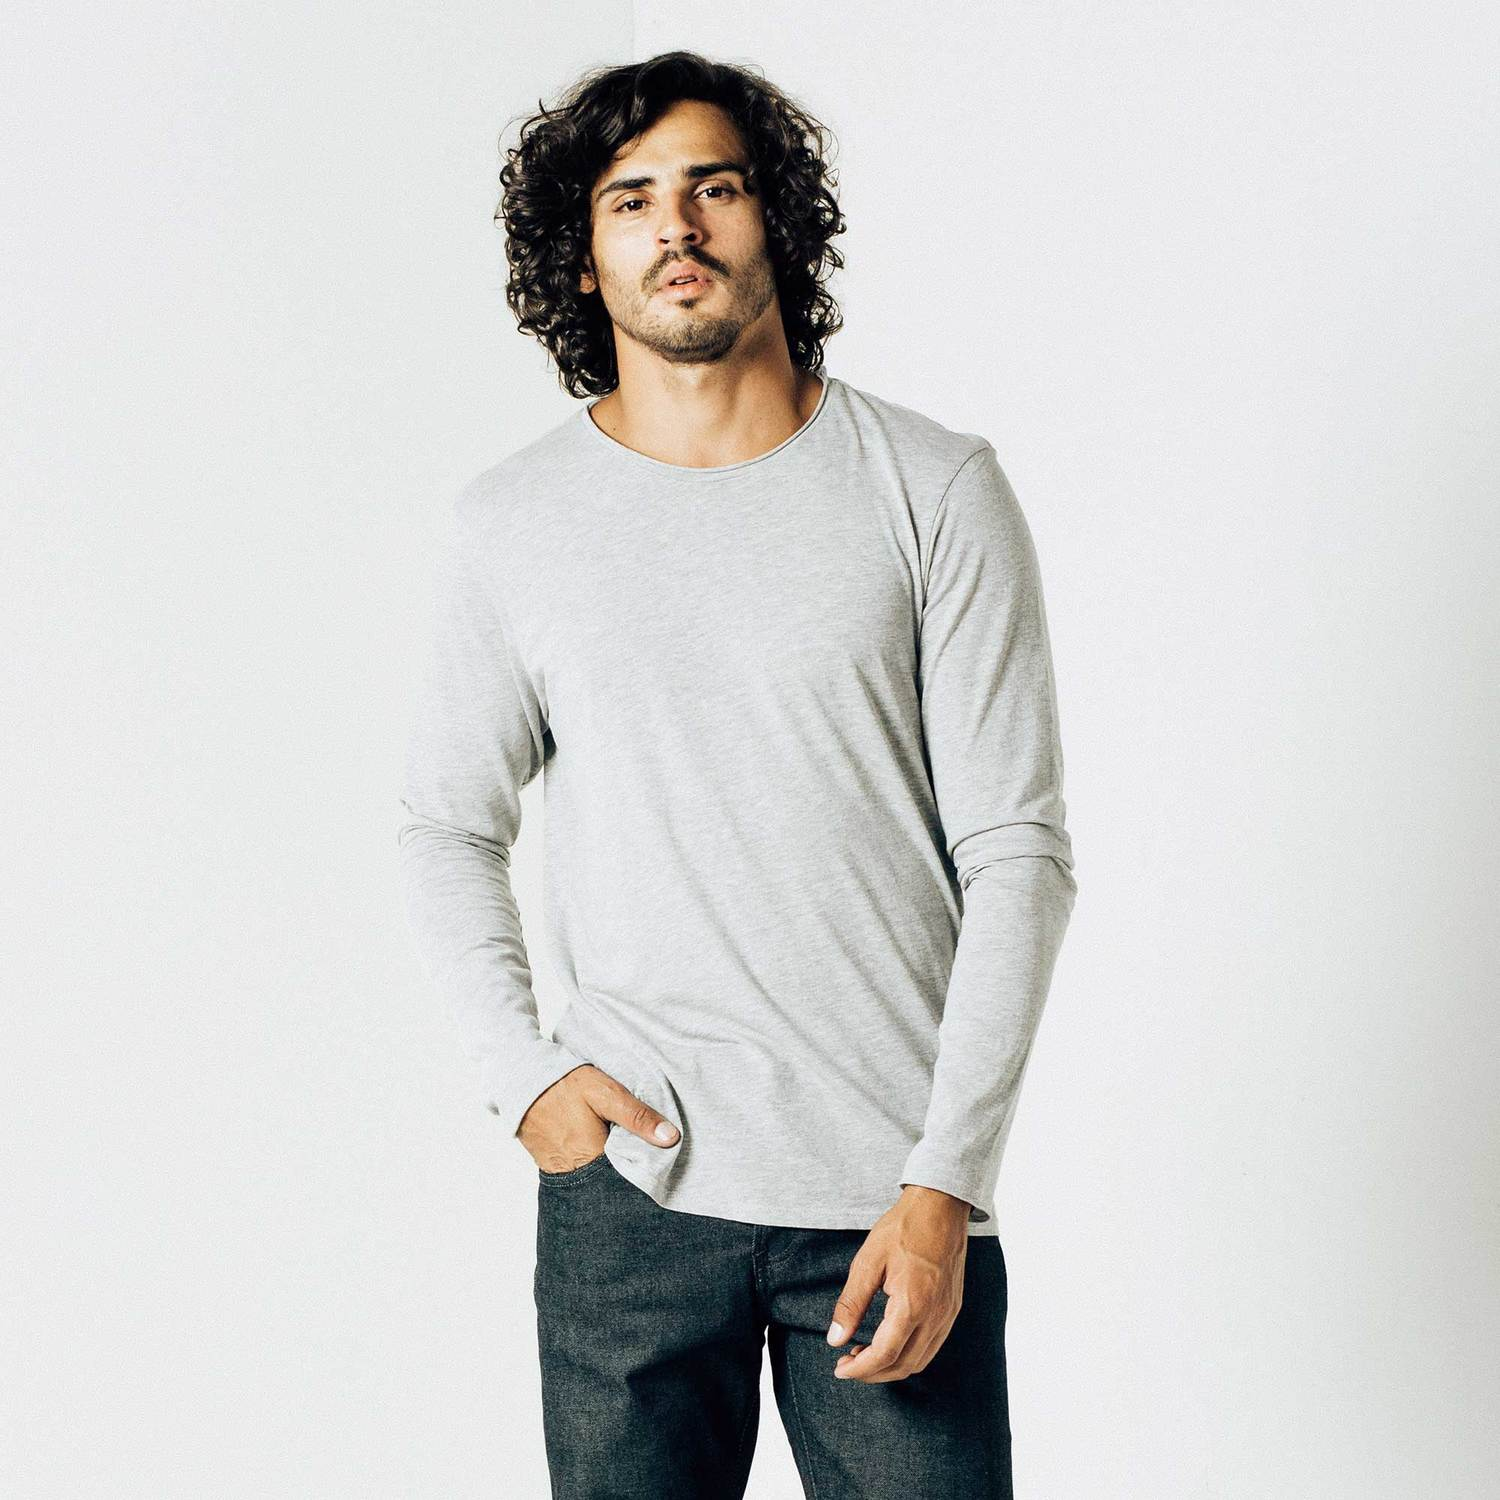 Mens Long Sleeve Modern Crew Neck Tee In Heather Grey $30 | DSTLD